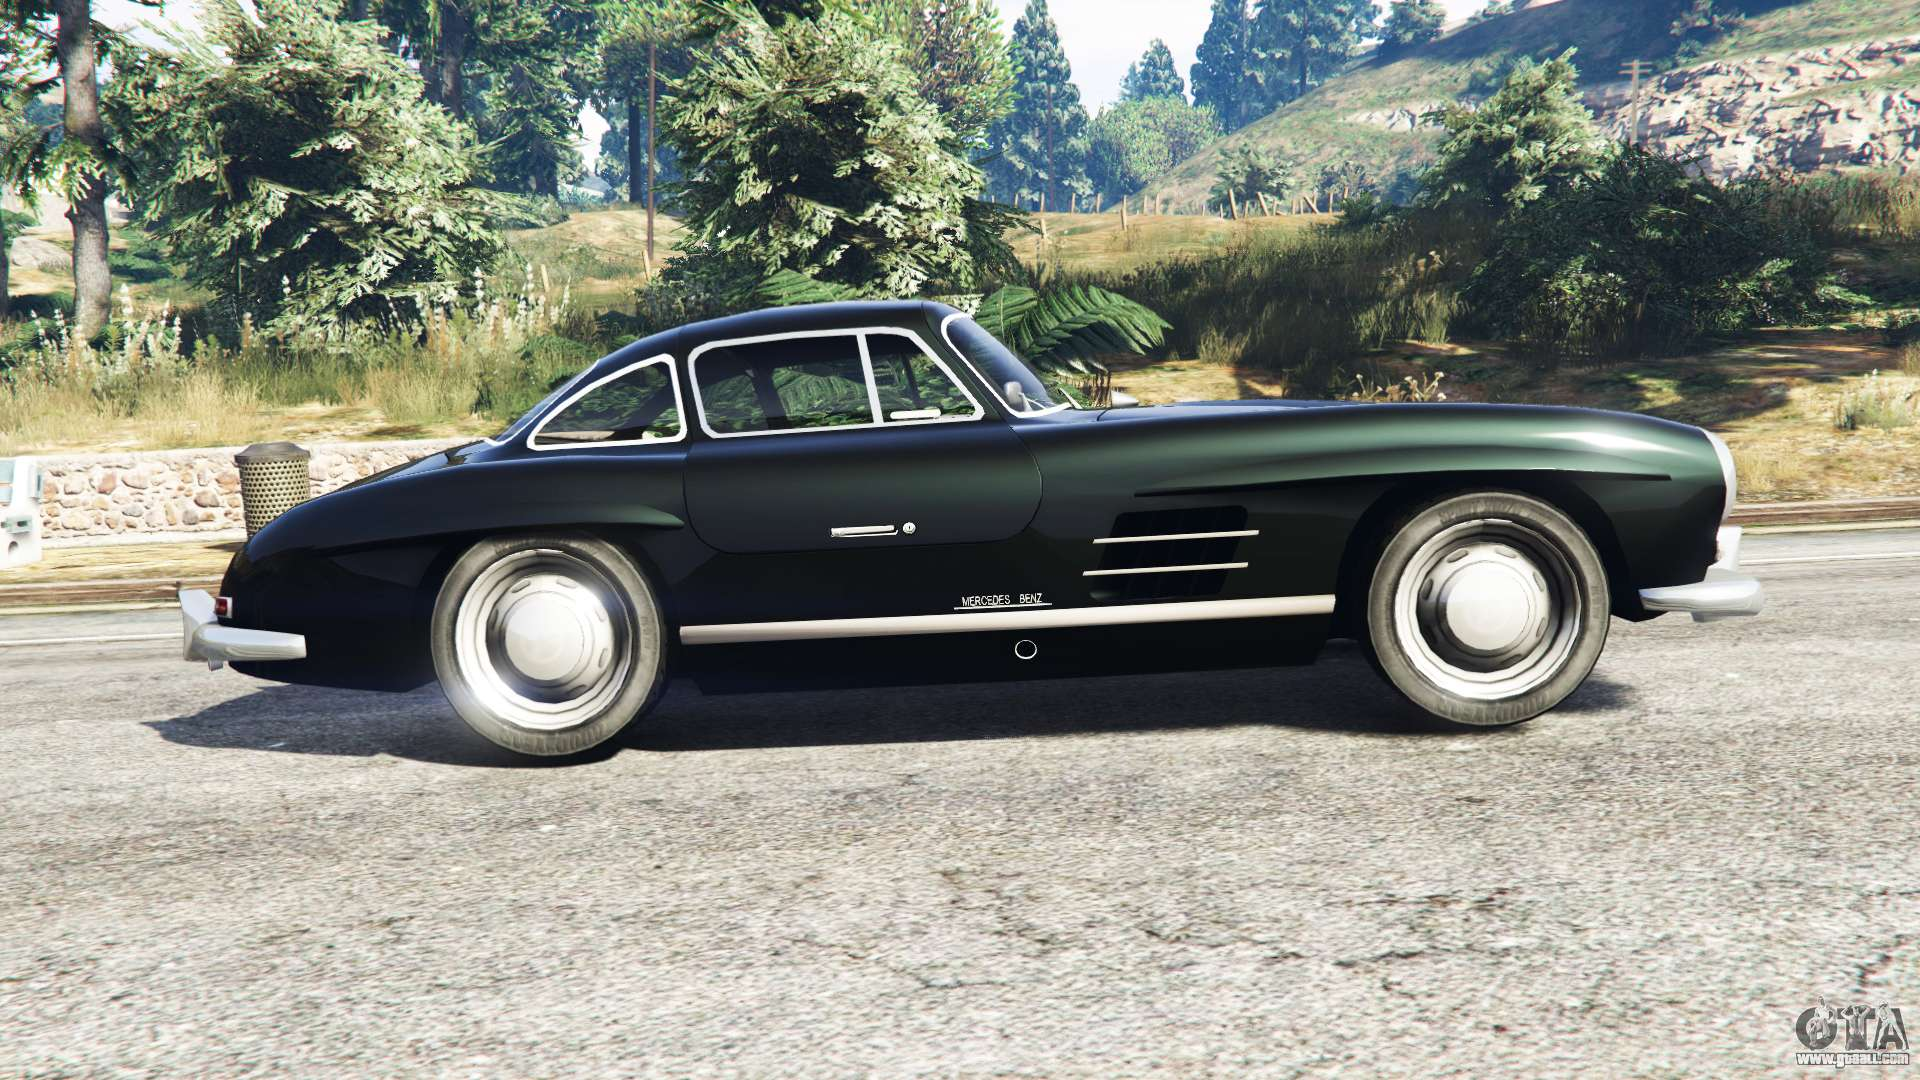 Mercedes benz 300 sl w198 1954 replace for gta 5 for 1954 mercedes benz 300sl